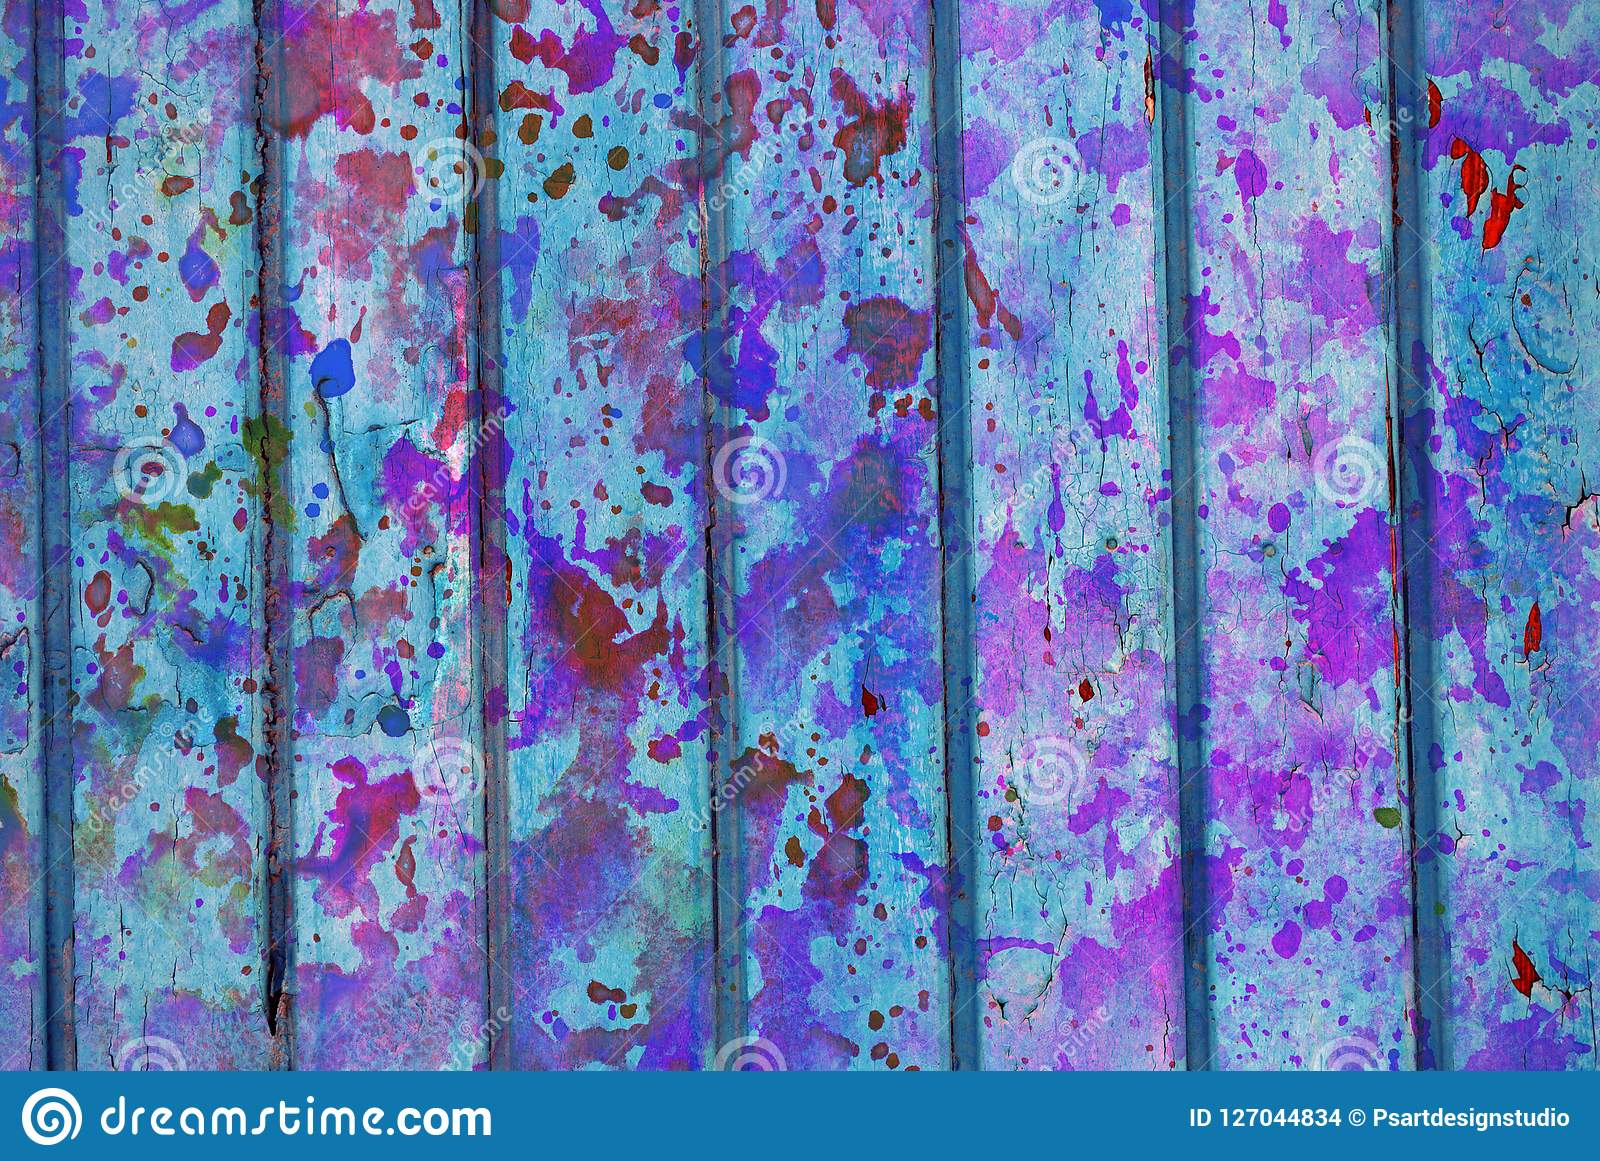 Mixed Media Artwork Abstract Colorful Artistic Painted Layer In